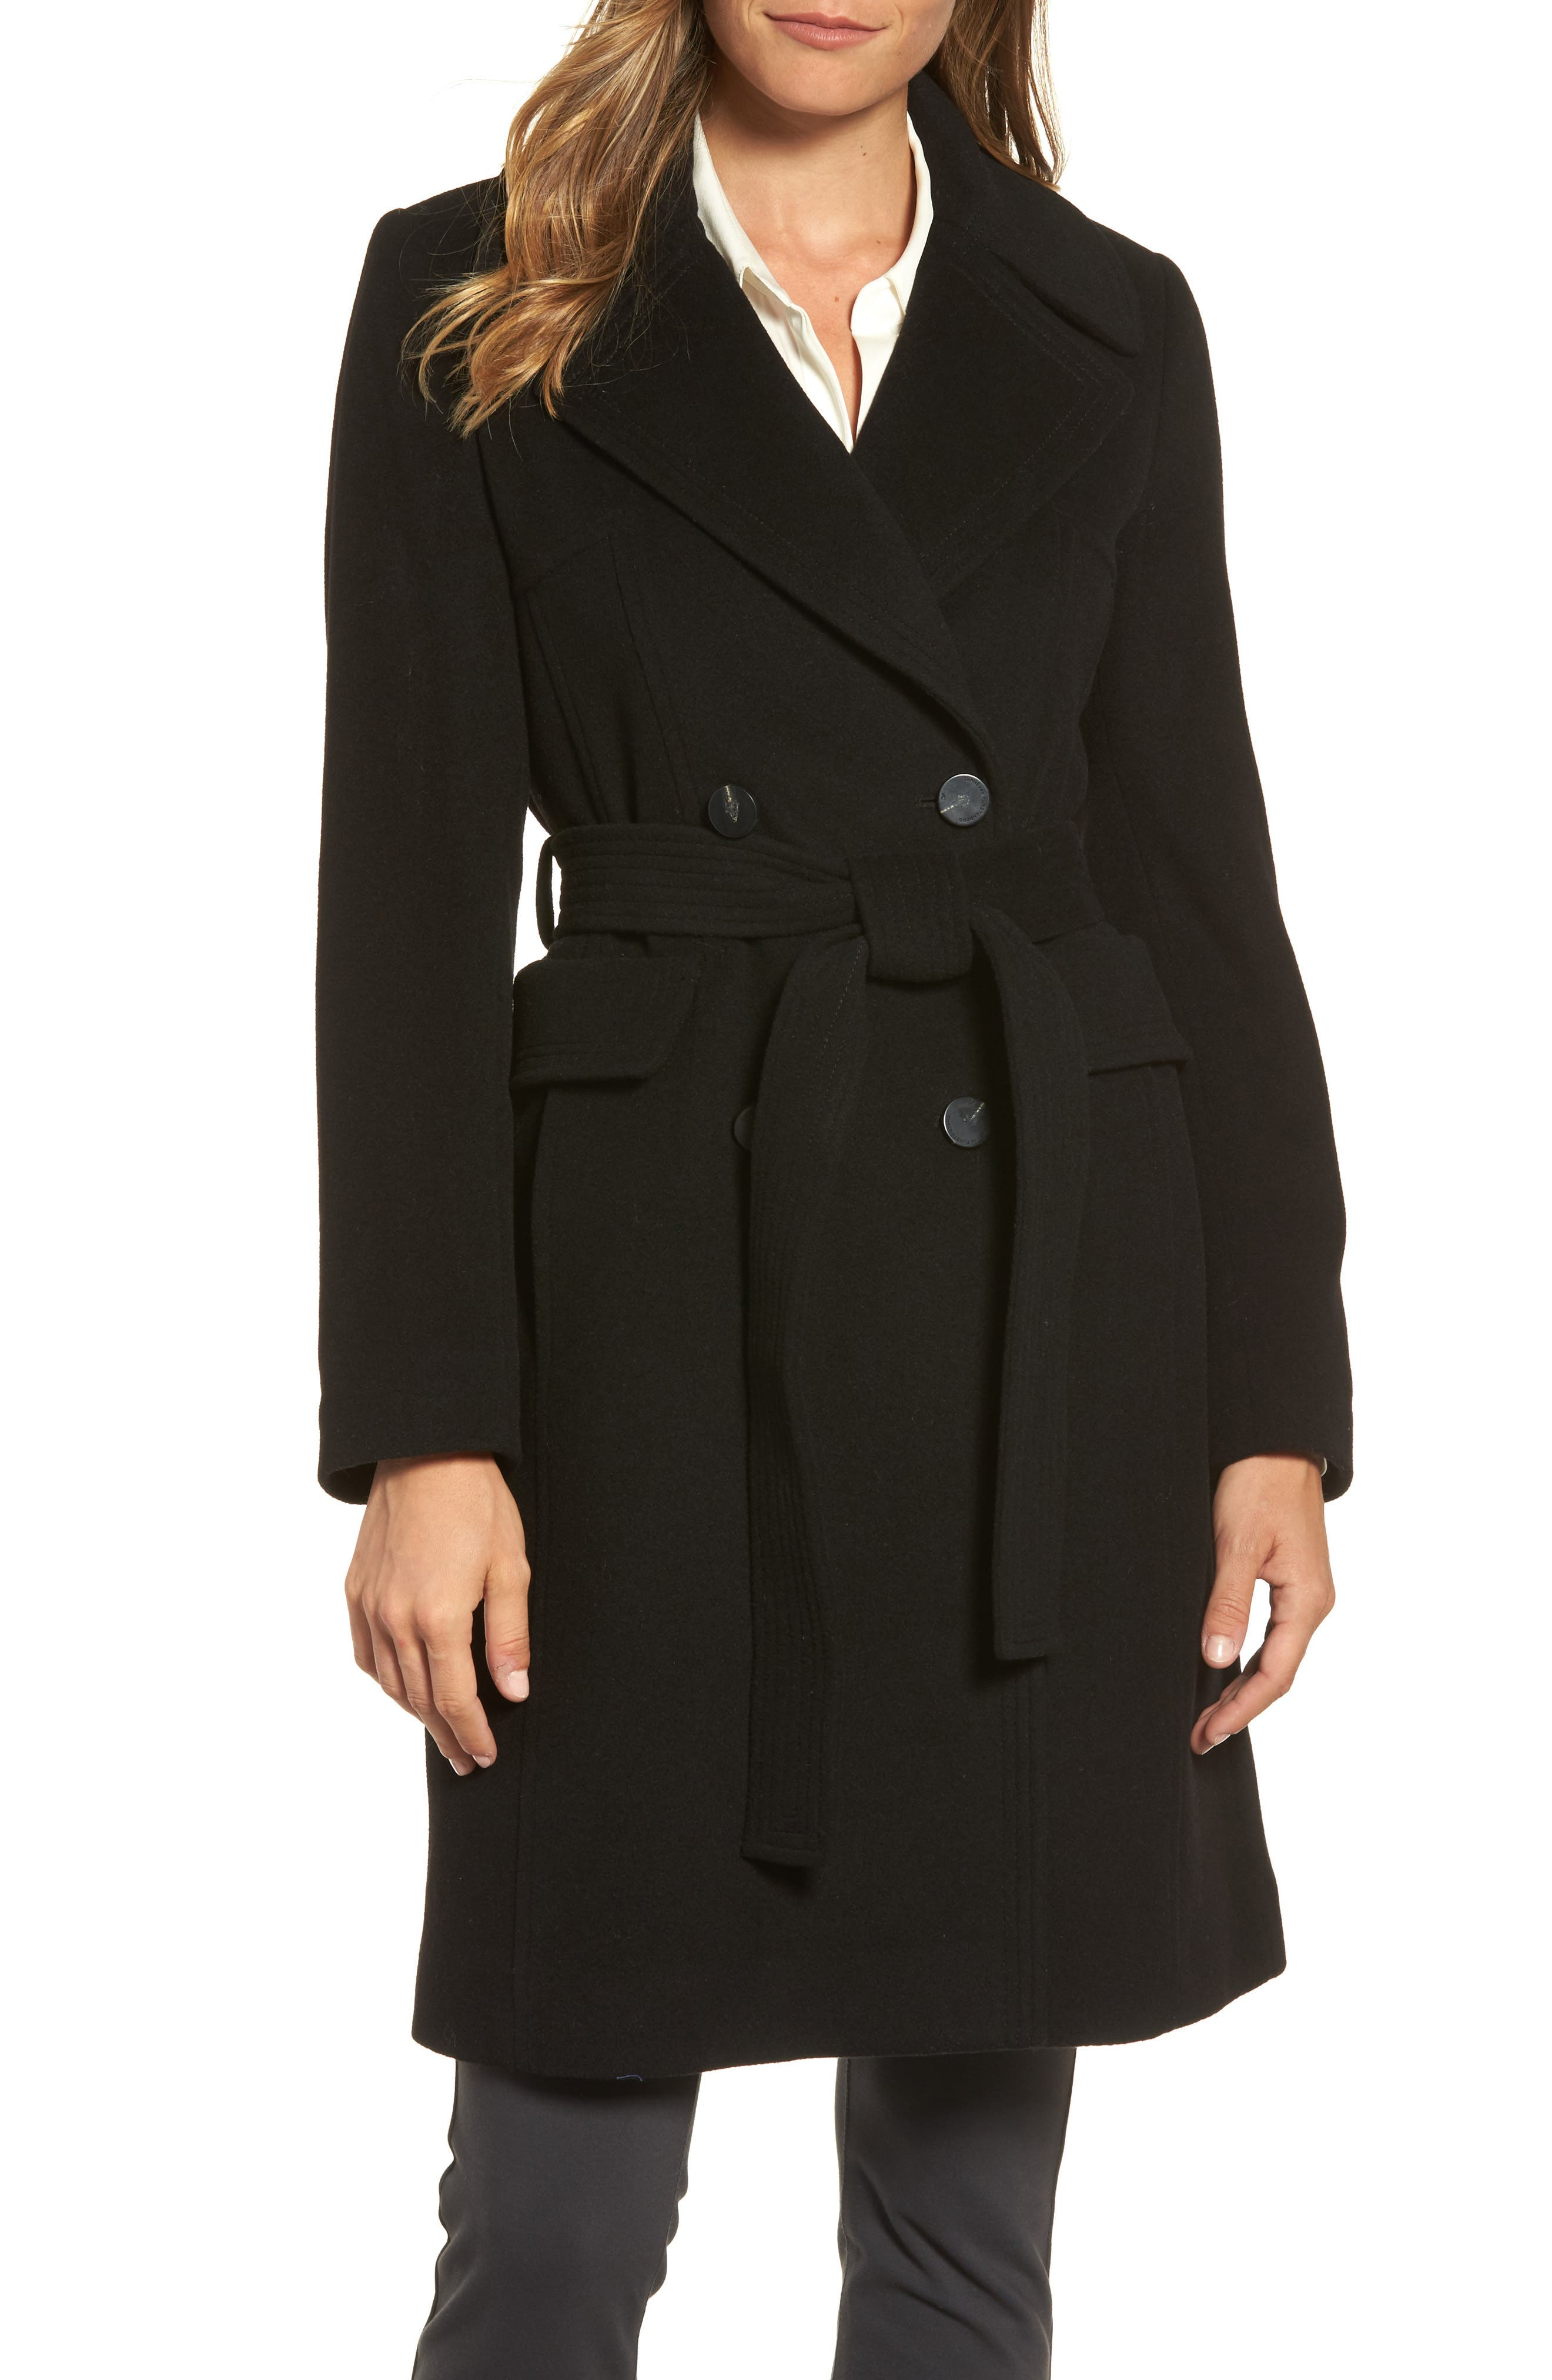 Diane von Furstenberg Double Breasted Coat